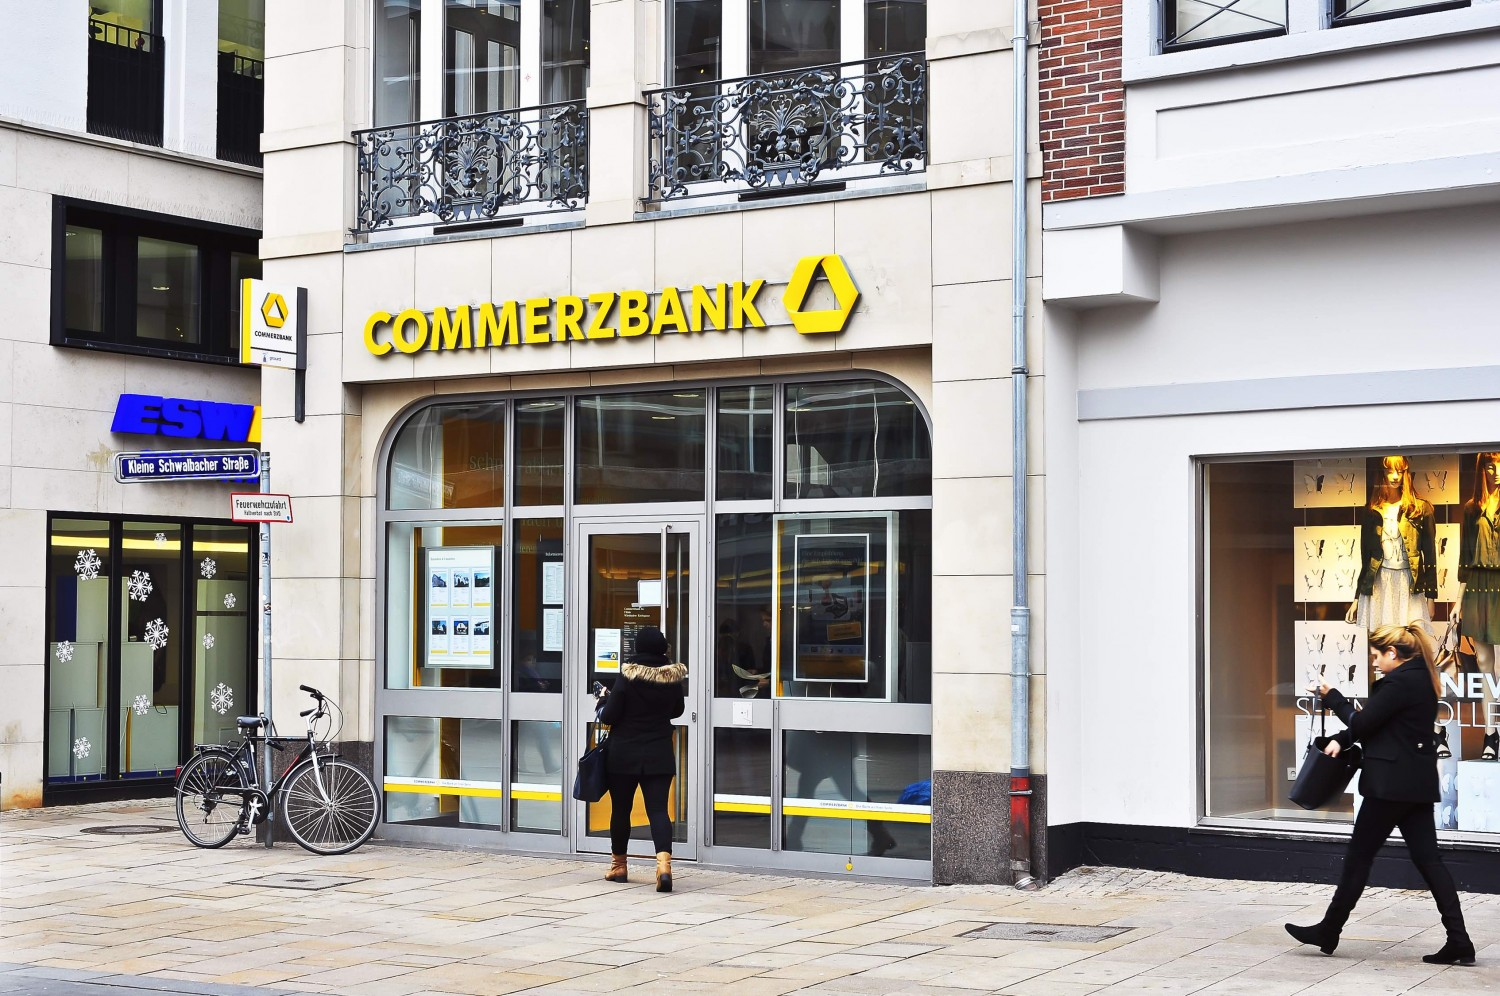 Commerzbank: Future of Bitcoin is an 'Open Question' - CoinDesk